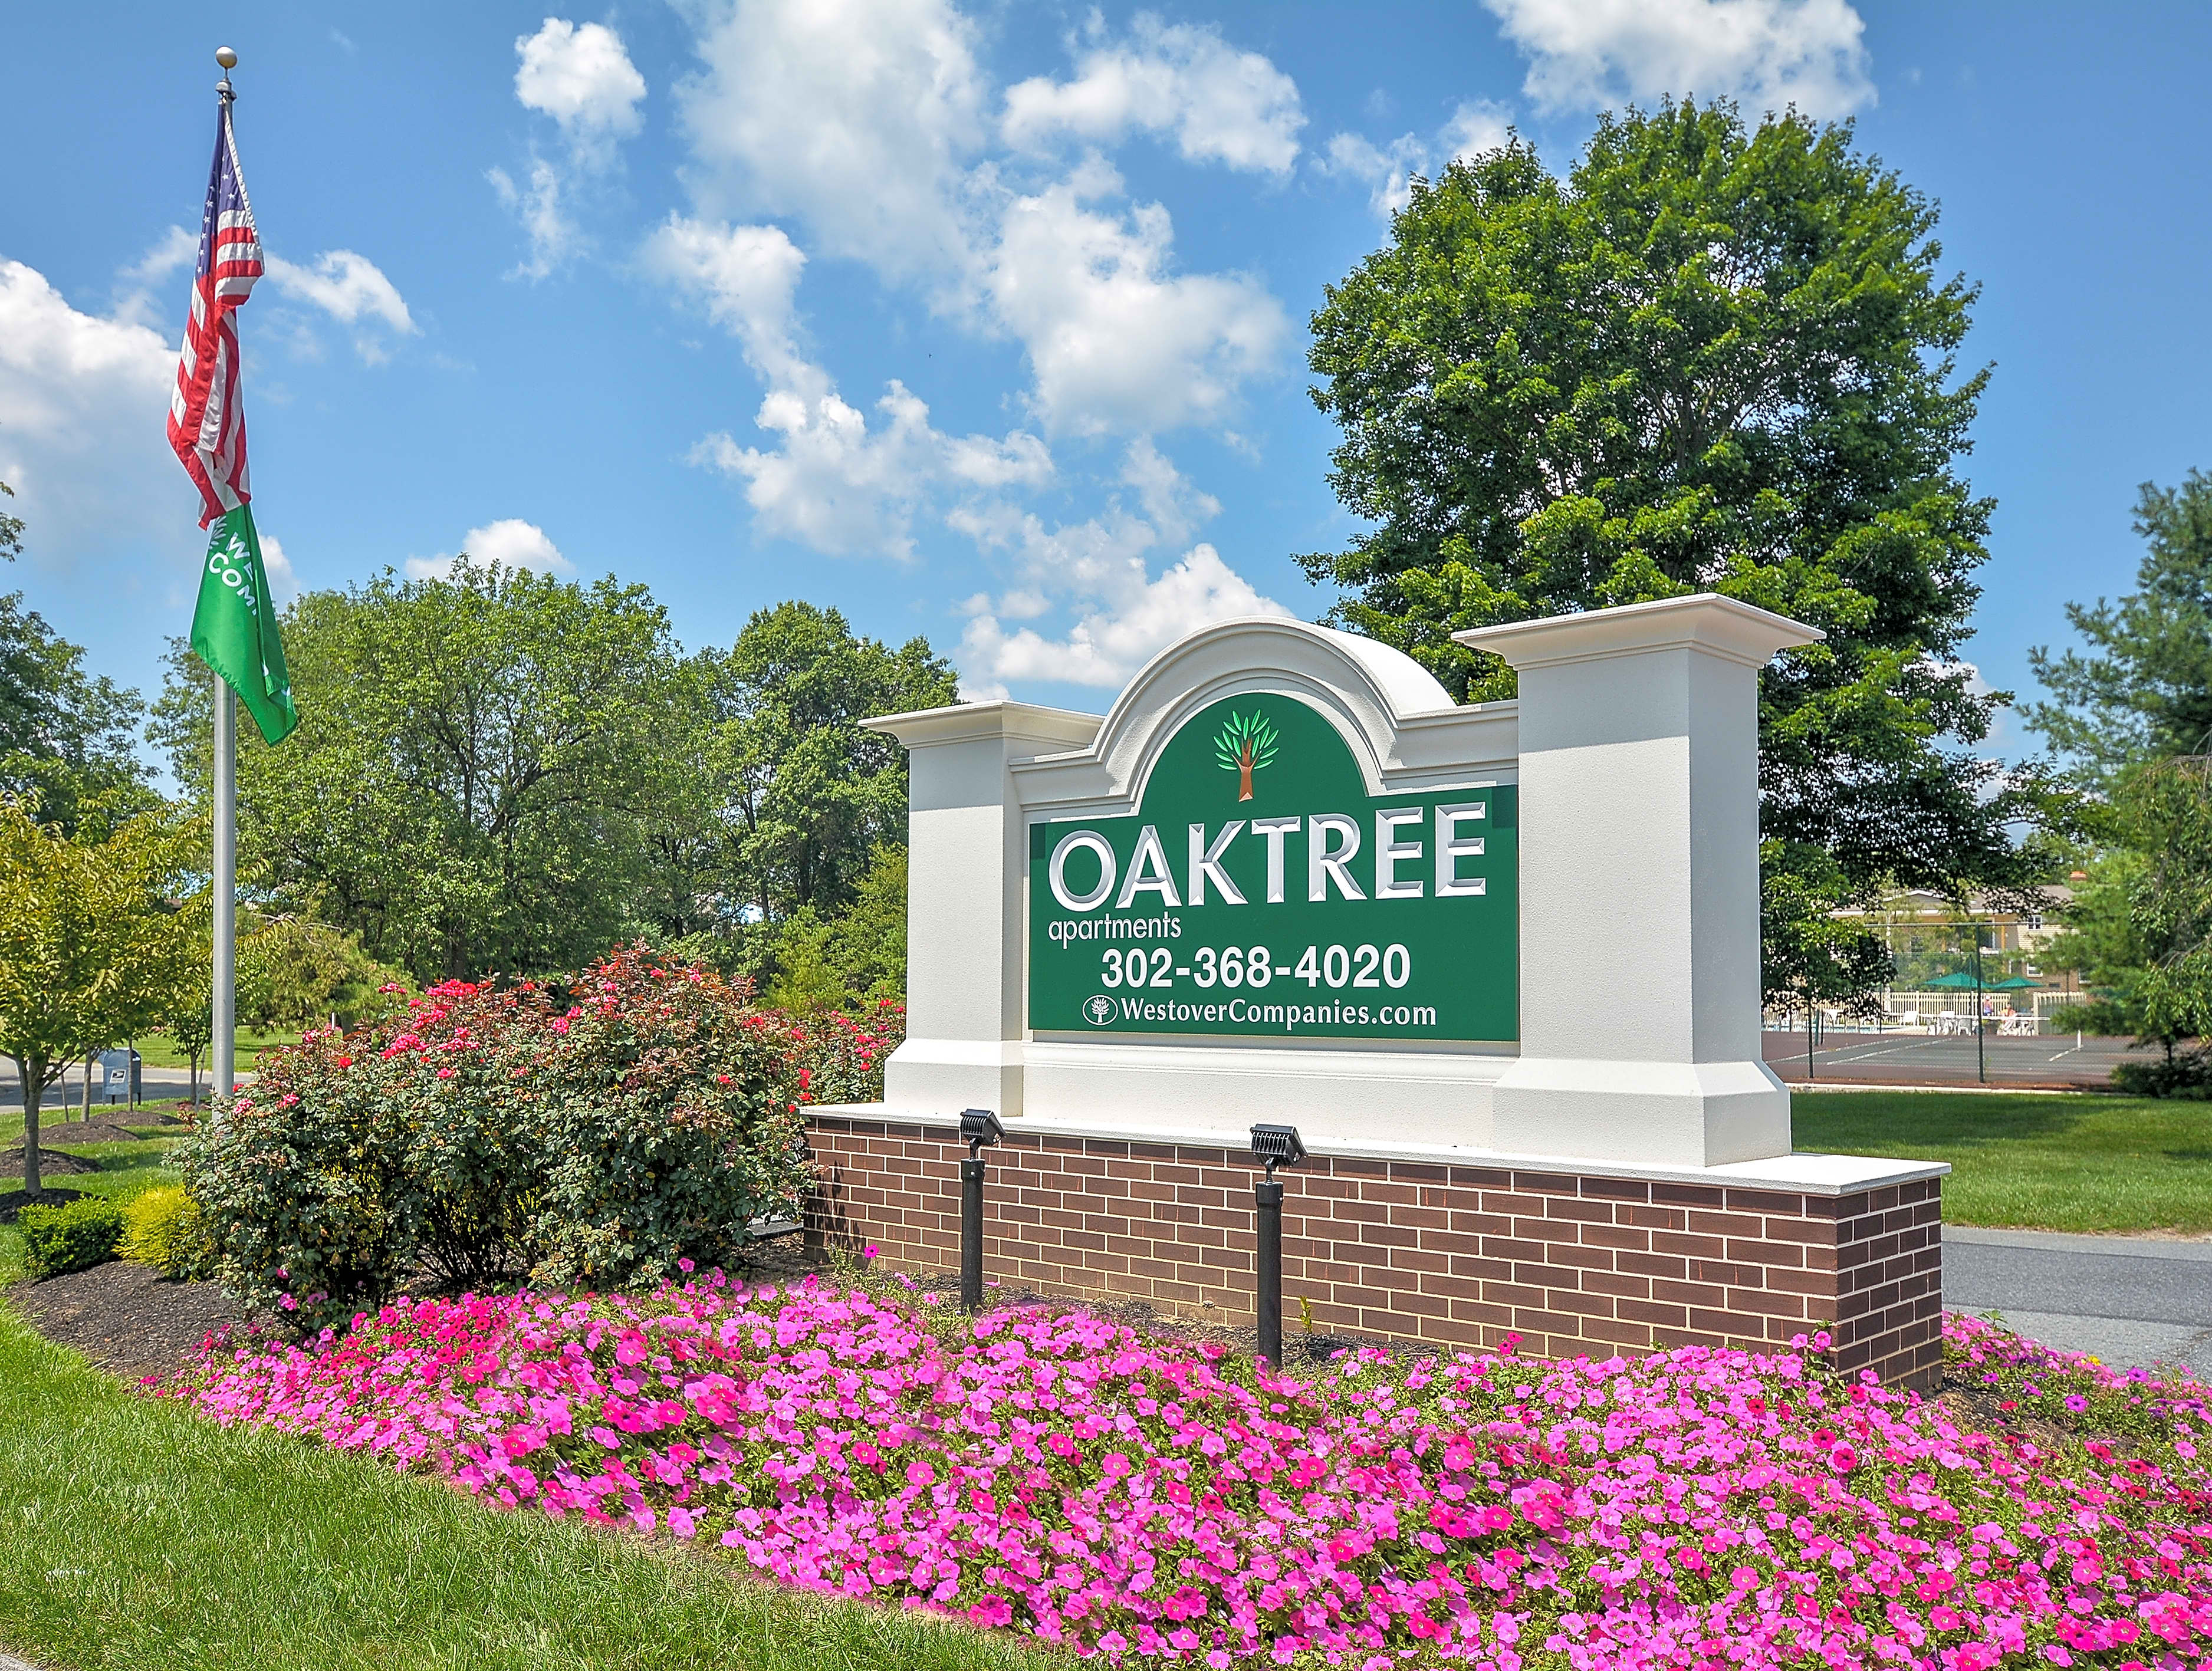 Apartments Near Delaware Oaktree Apartments for University of Delaware Students in Newark, DE